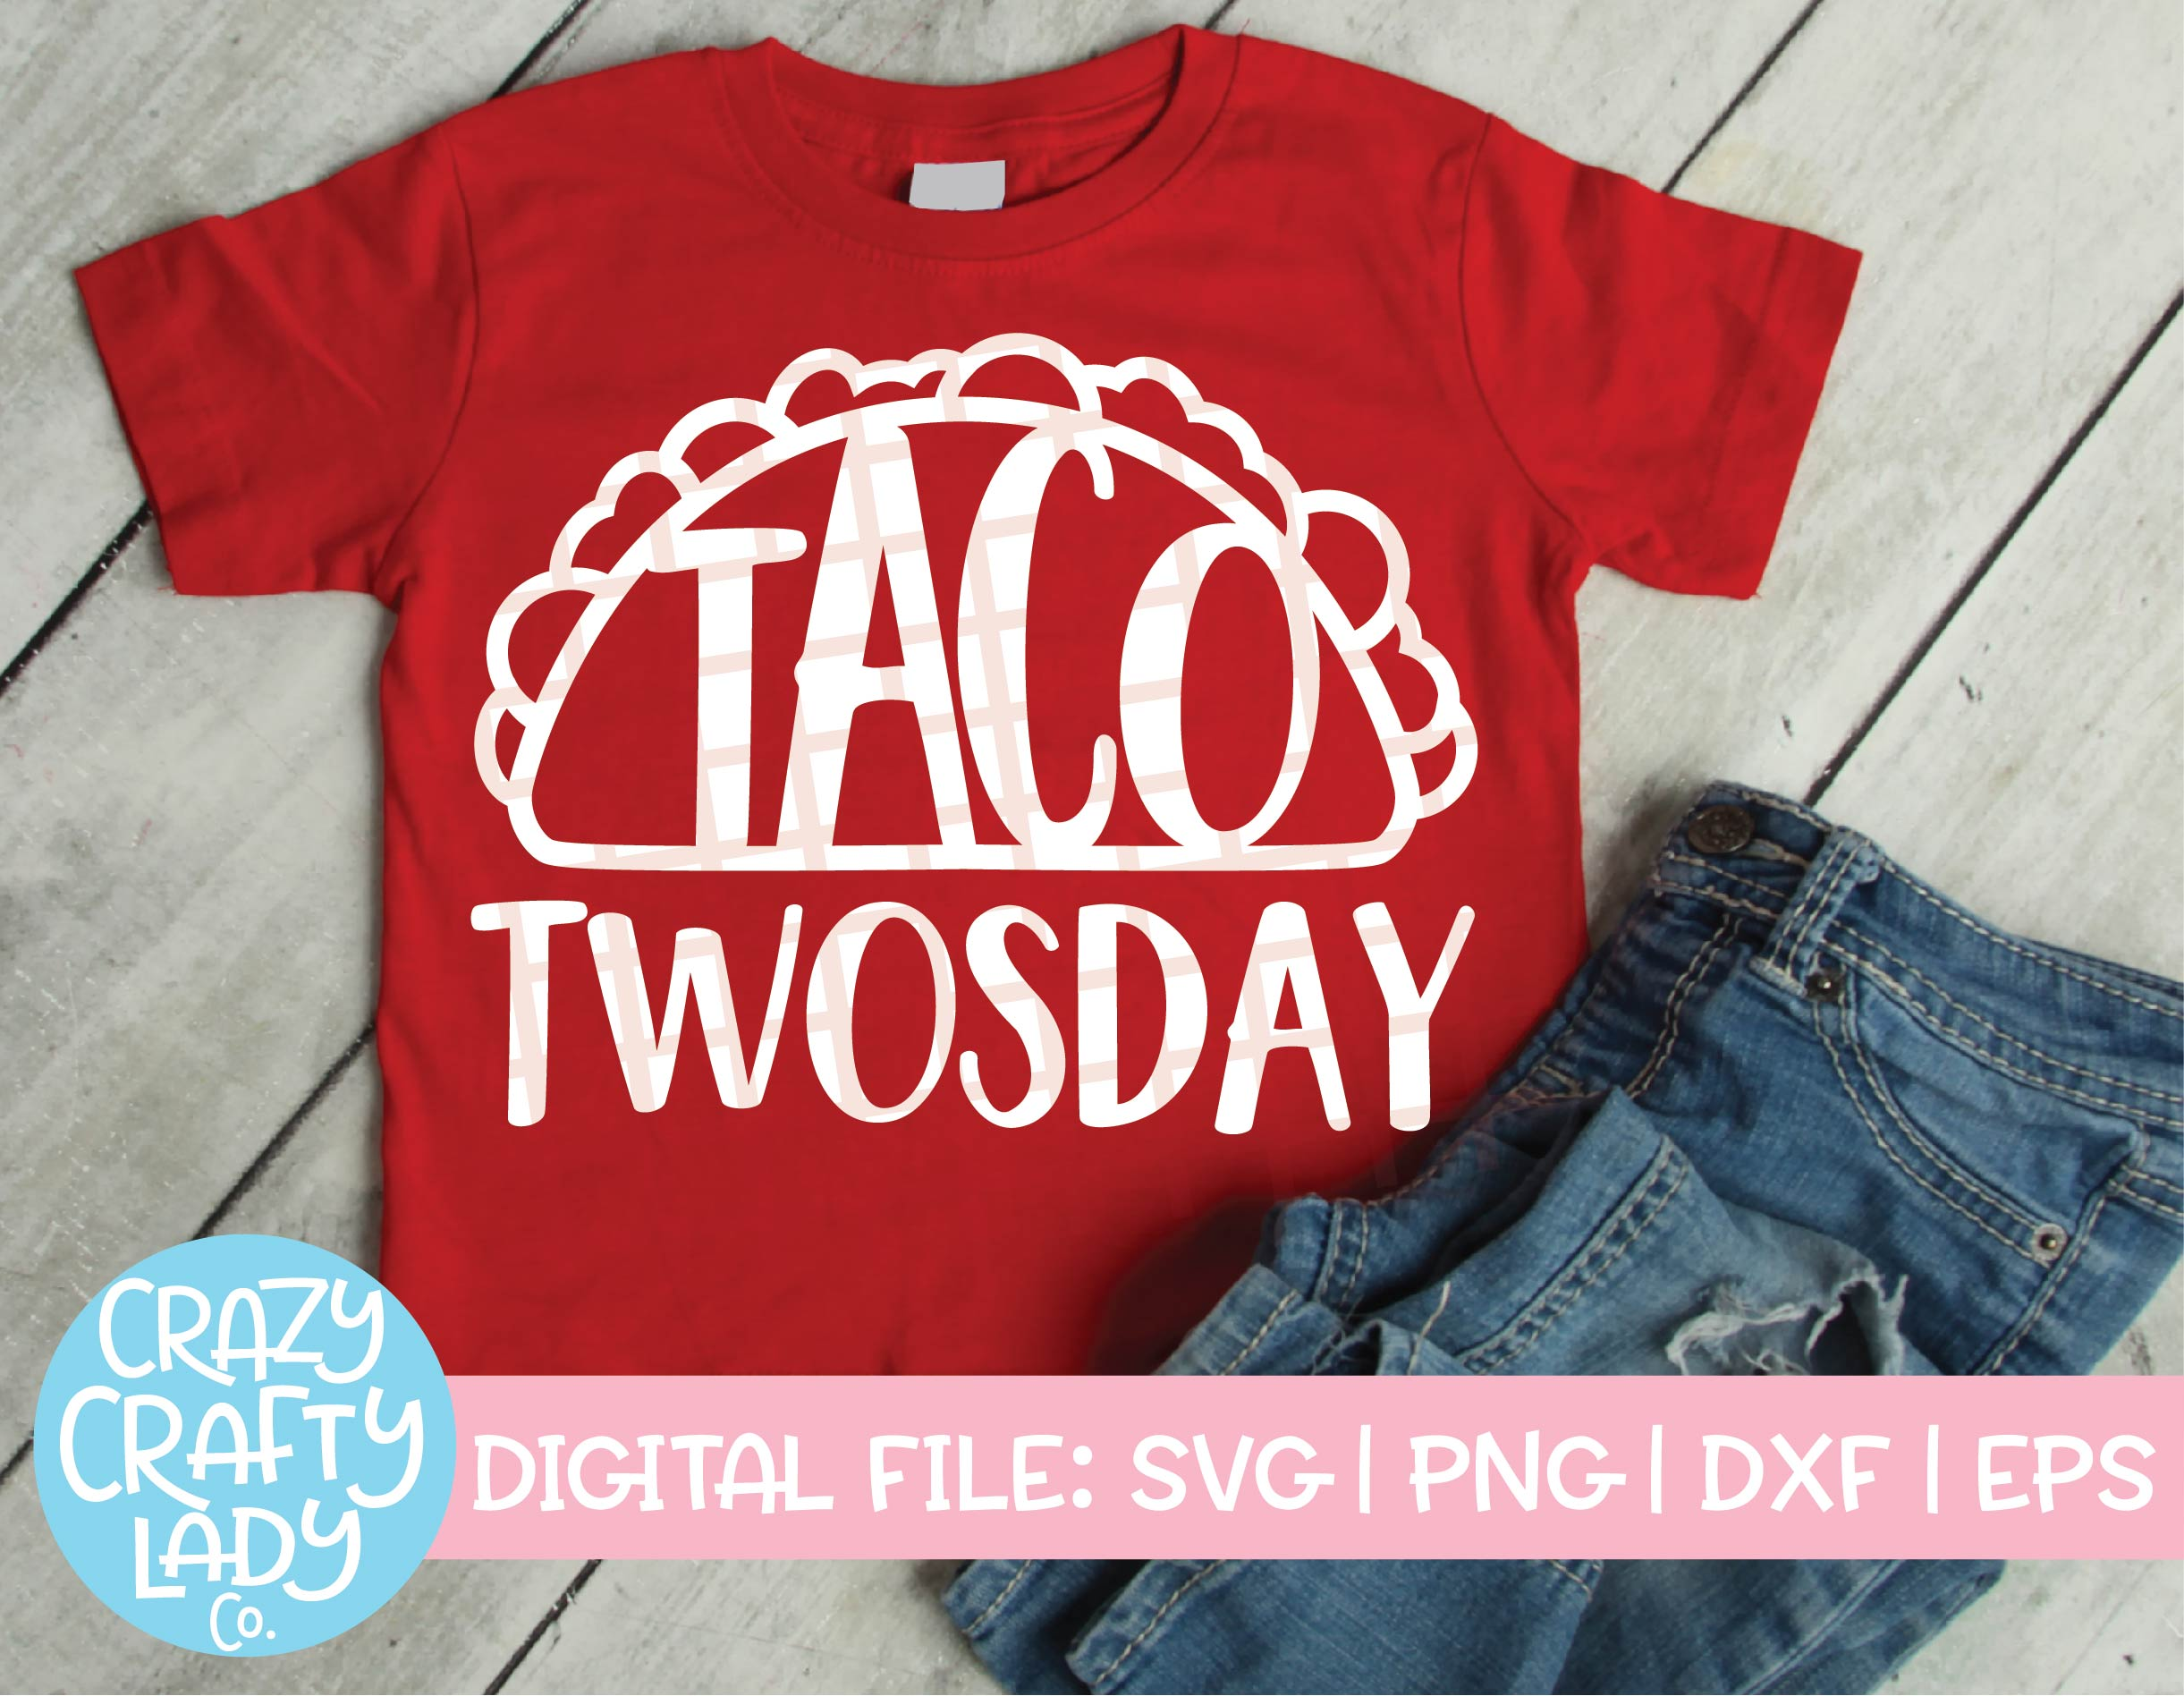 Taco twosday clipart banner black and white download Taco Twosday banner black and white download